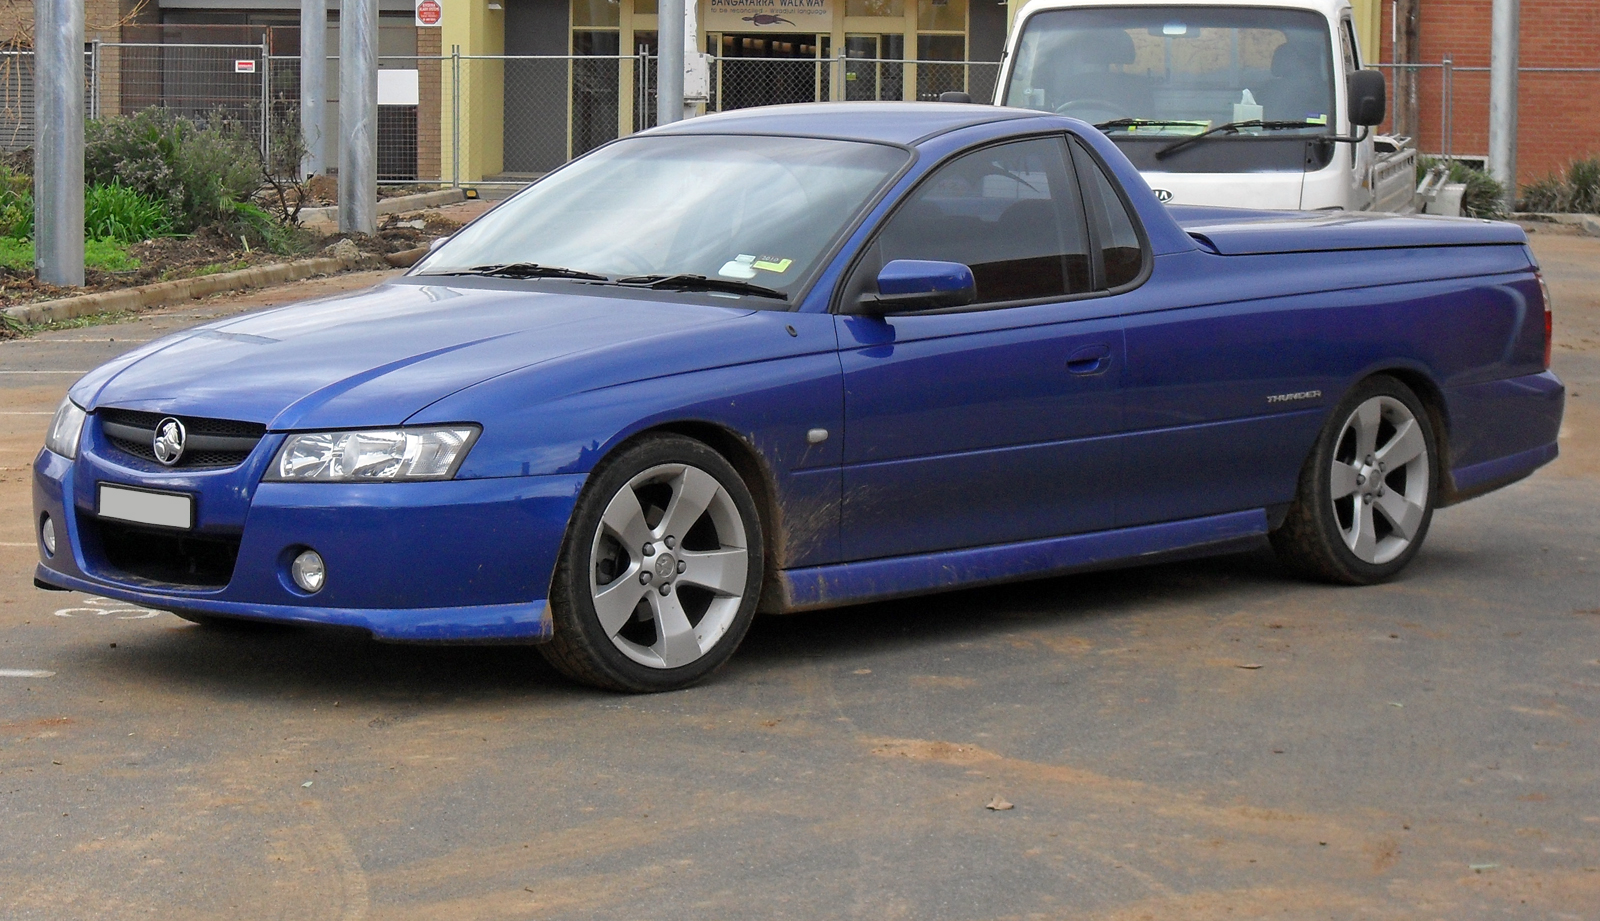 Holden UTE IV 2006 - now Pickup #2